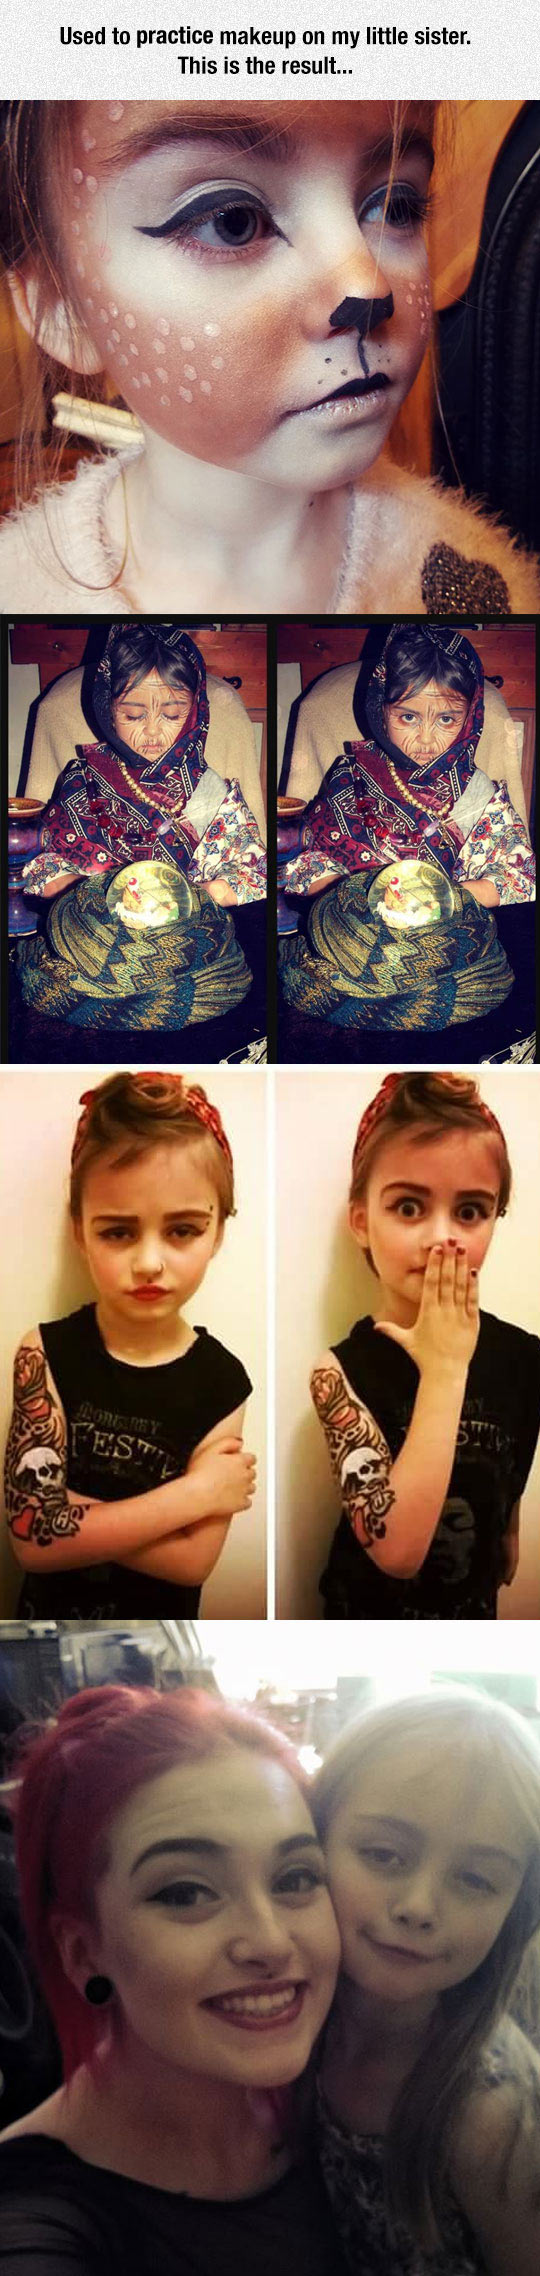 cool-baby-sister-makeup-cat-old